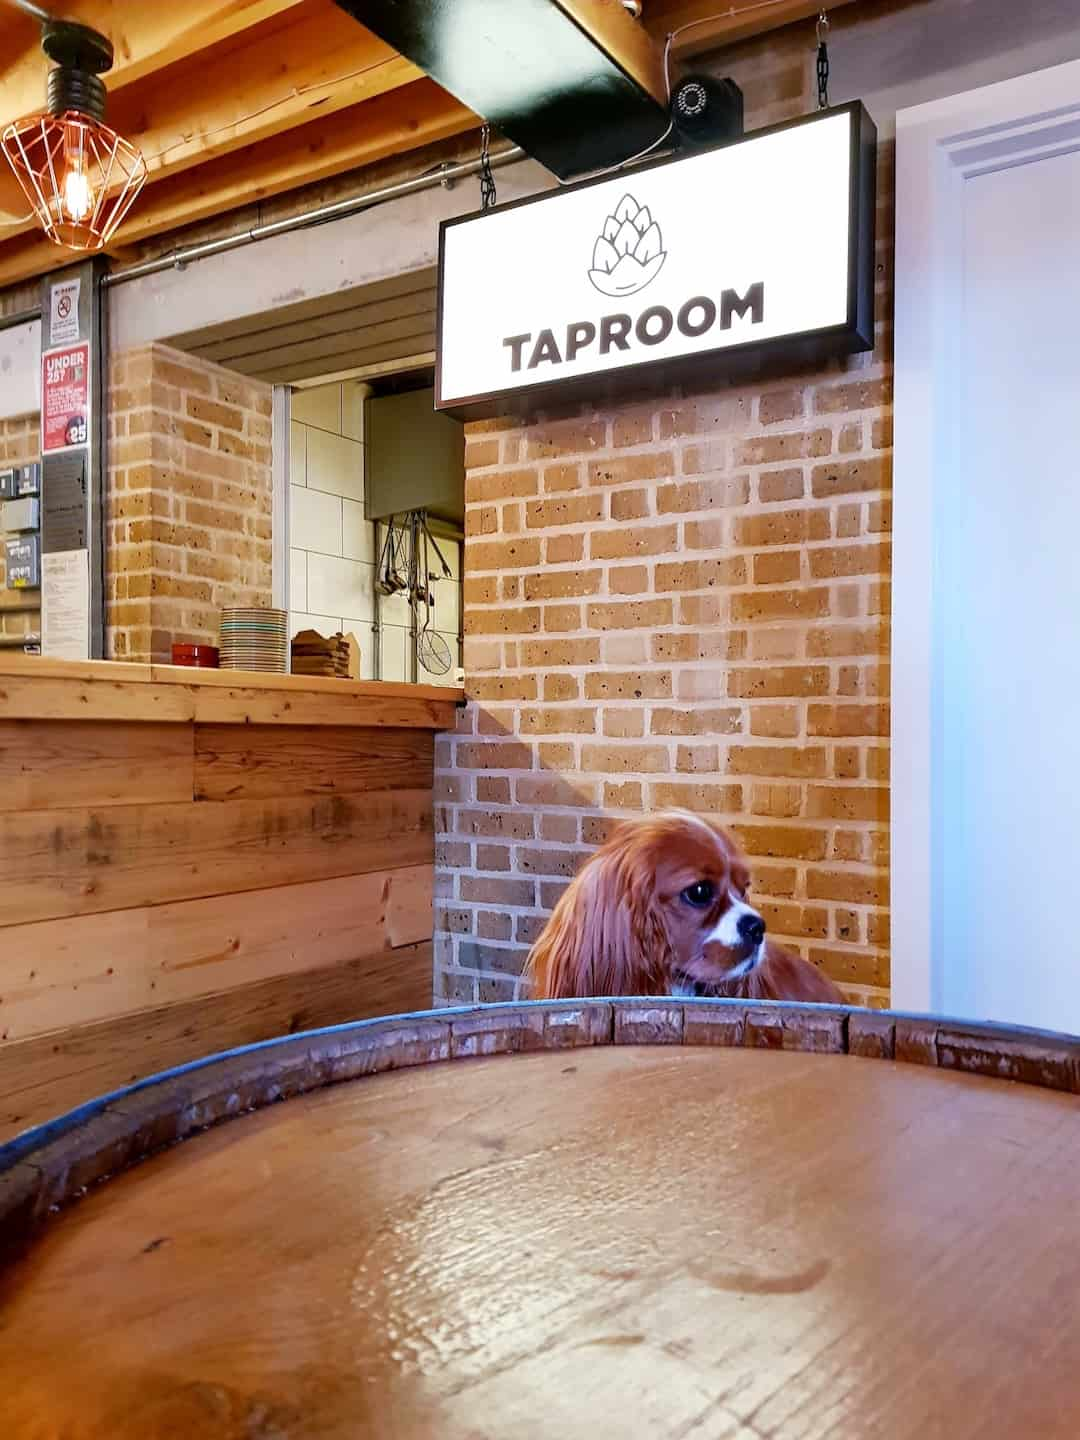 My Dog Friendly London by Amber The Cav - The Tap Room 4